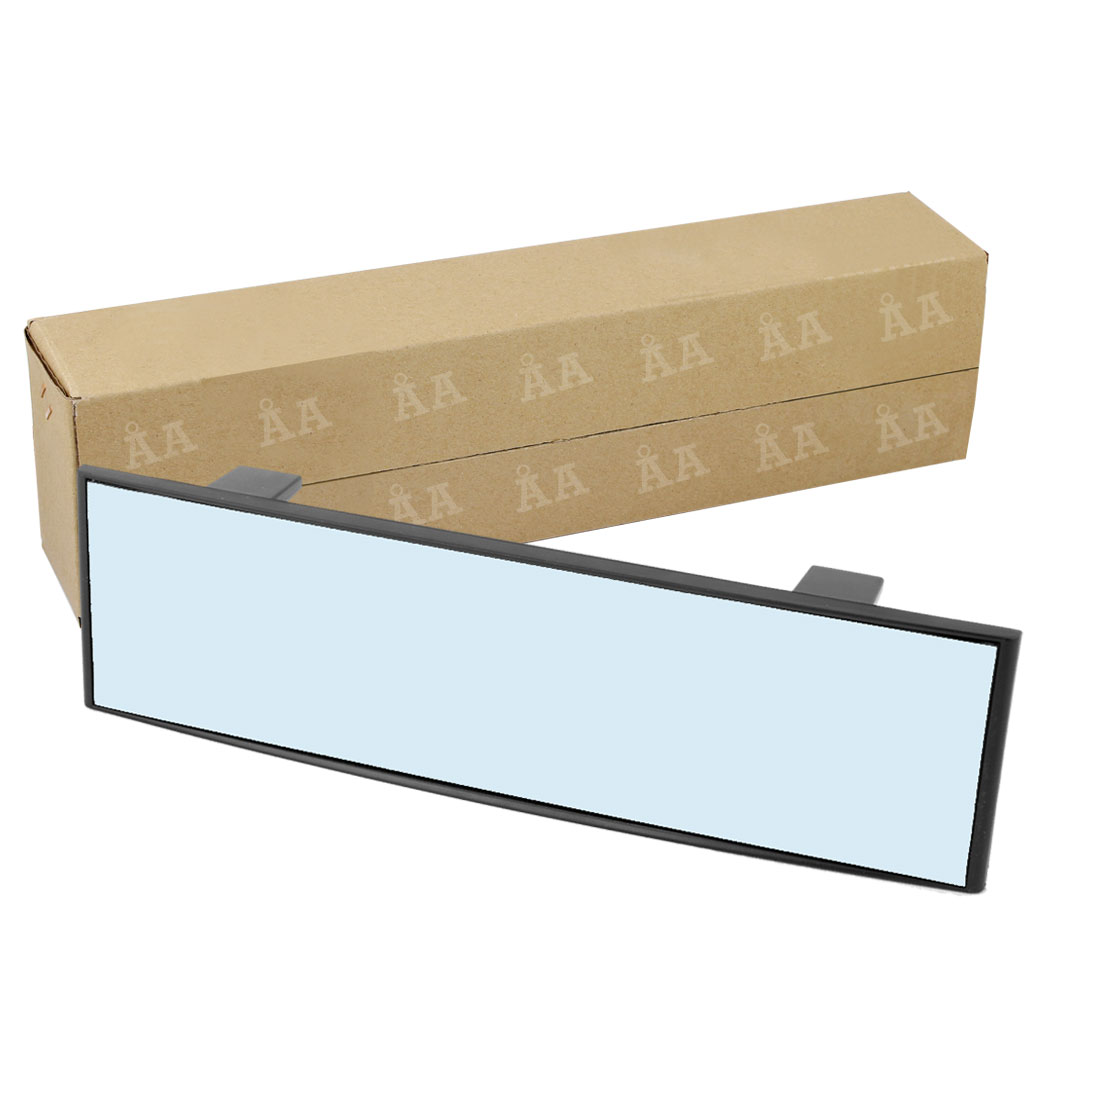 270mm Wide Anti-Glare Blue Tint Curve Clip On Rear View Mirror 75mm